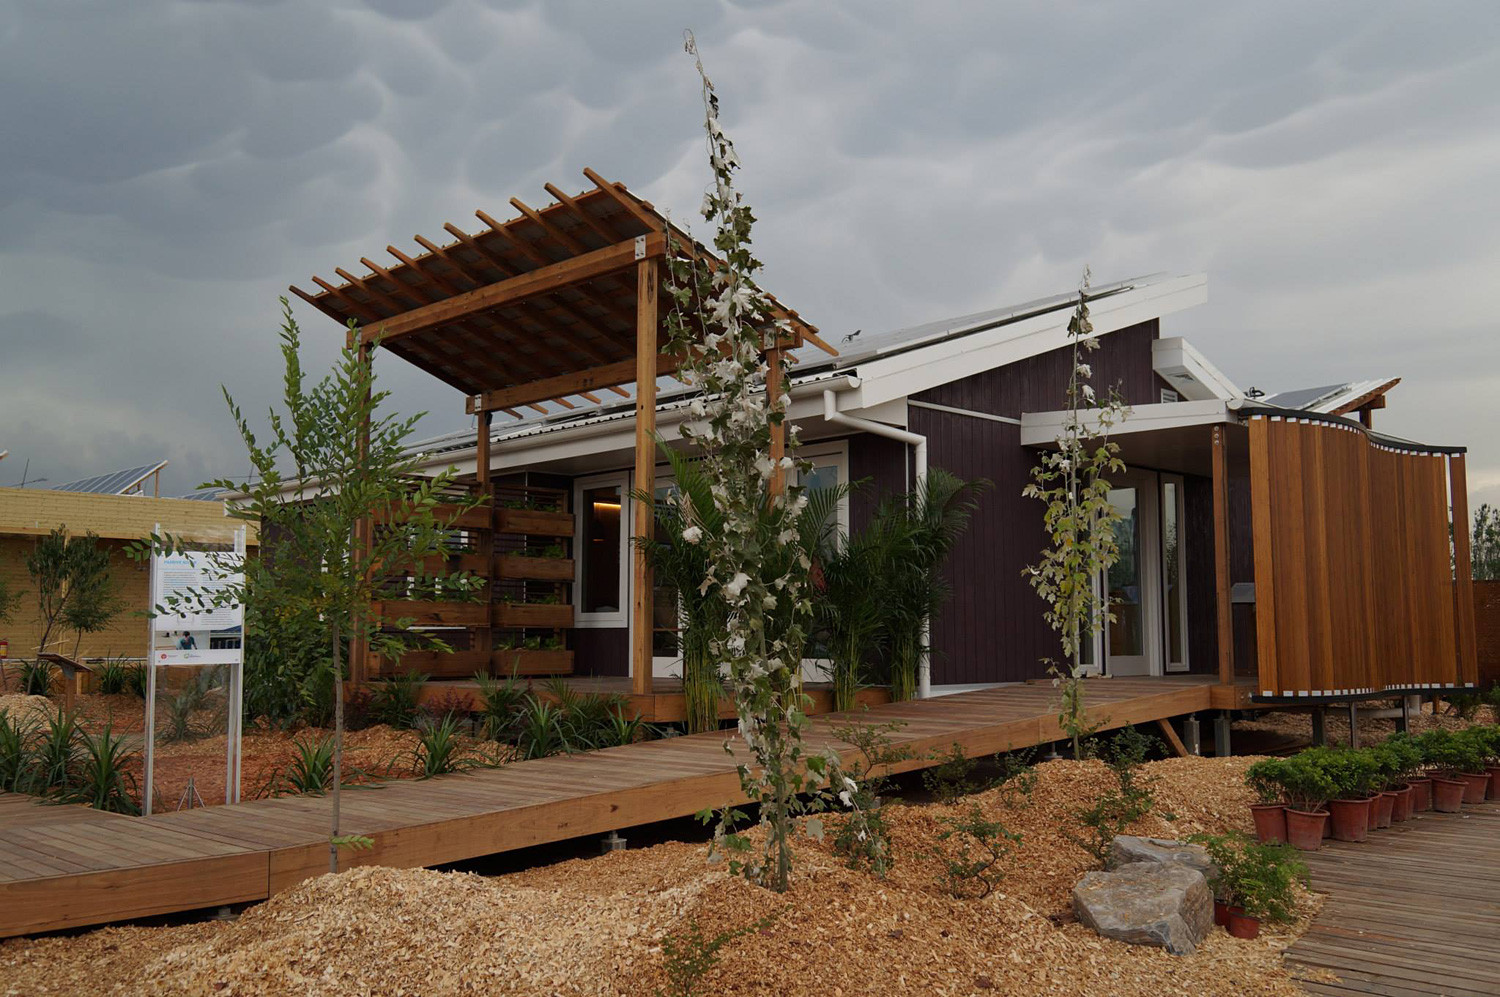 UOW Australia Wins the 2013 Solar Decathlon China , Courtesy of Team UOW